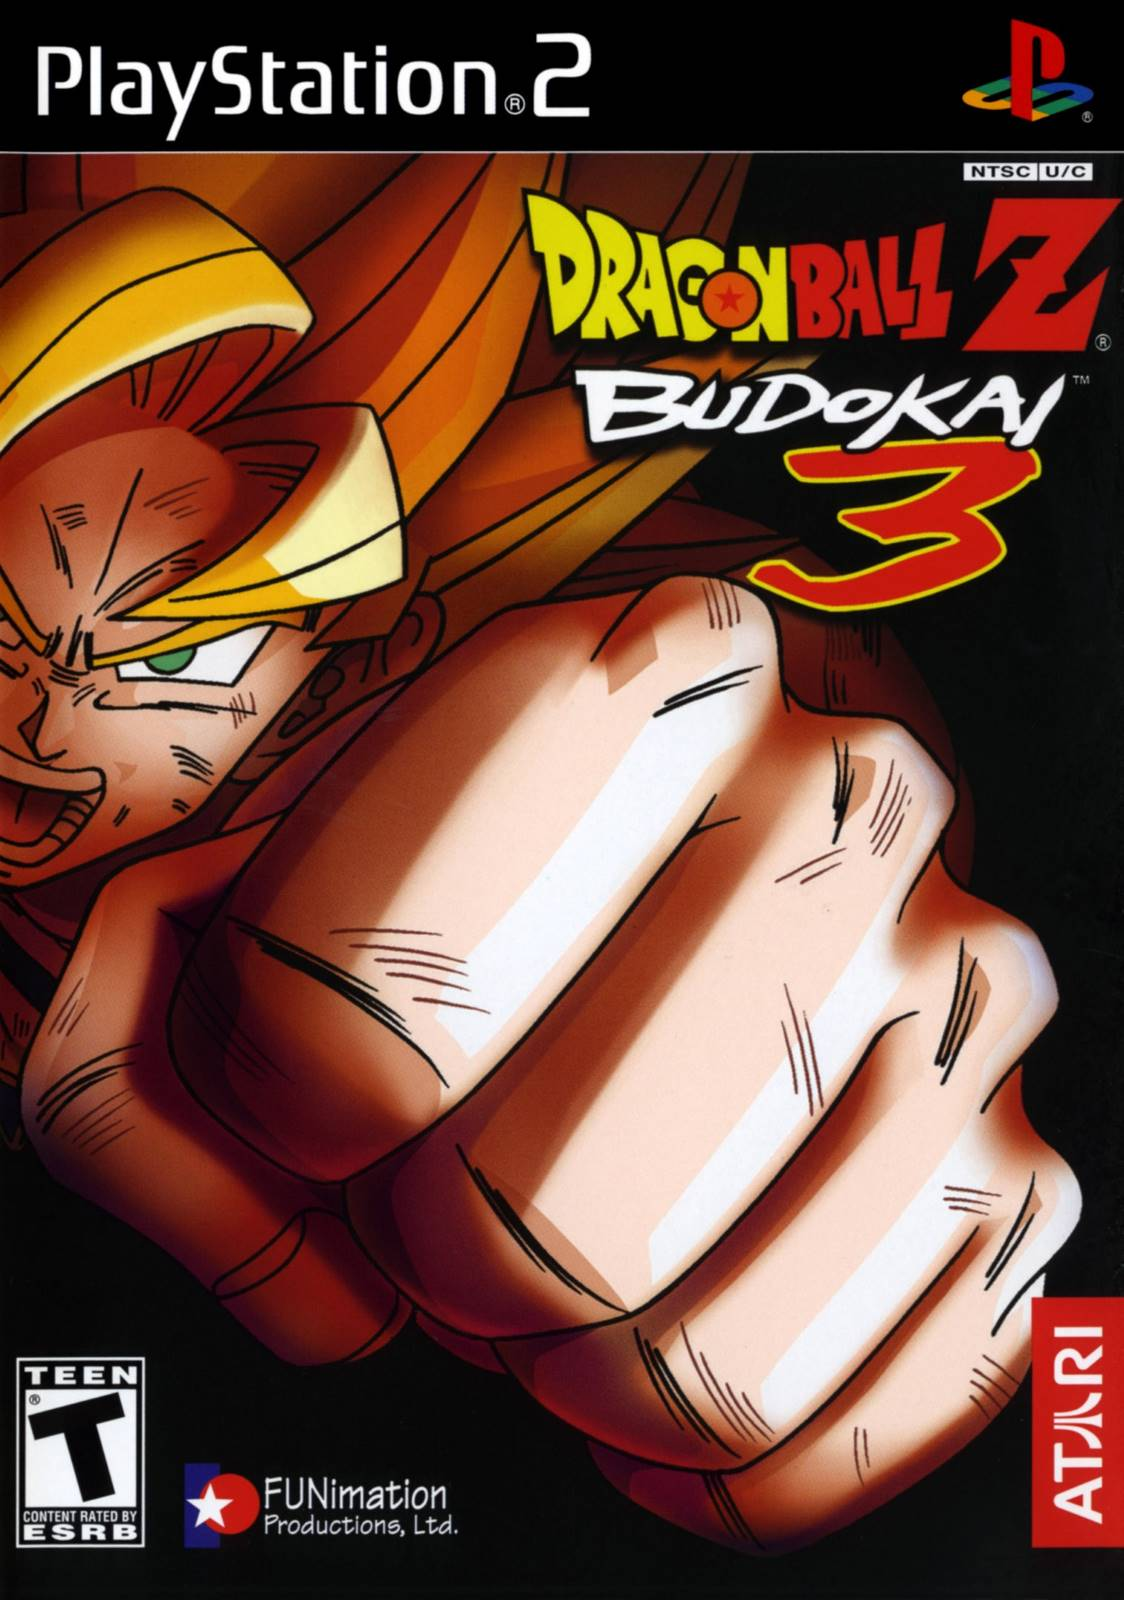 Dragonballz budokai xxx pics sex galleries